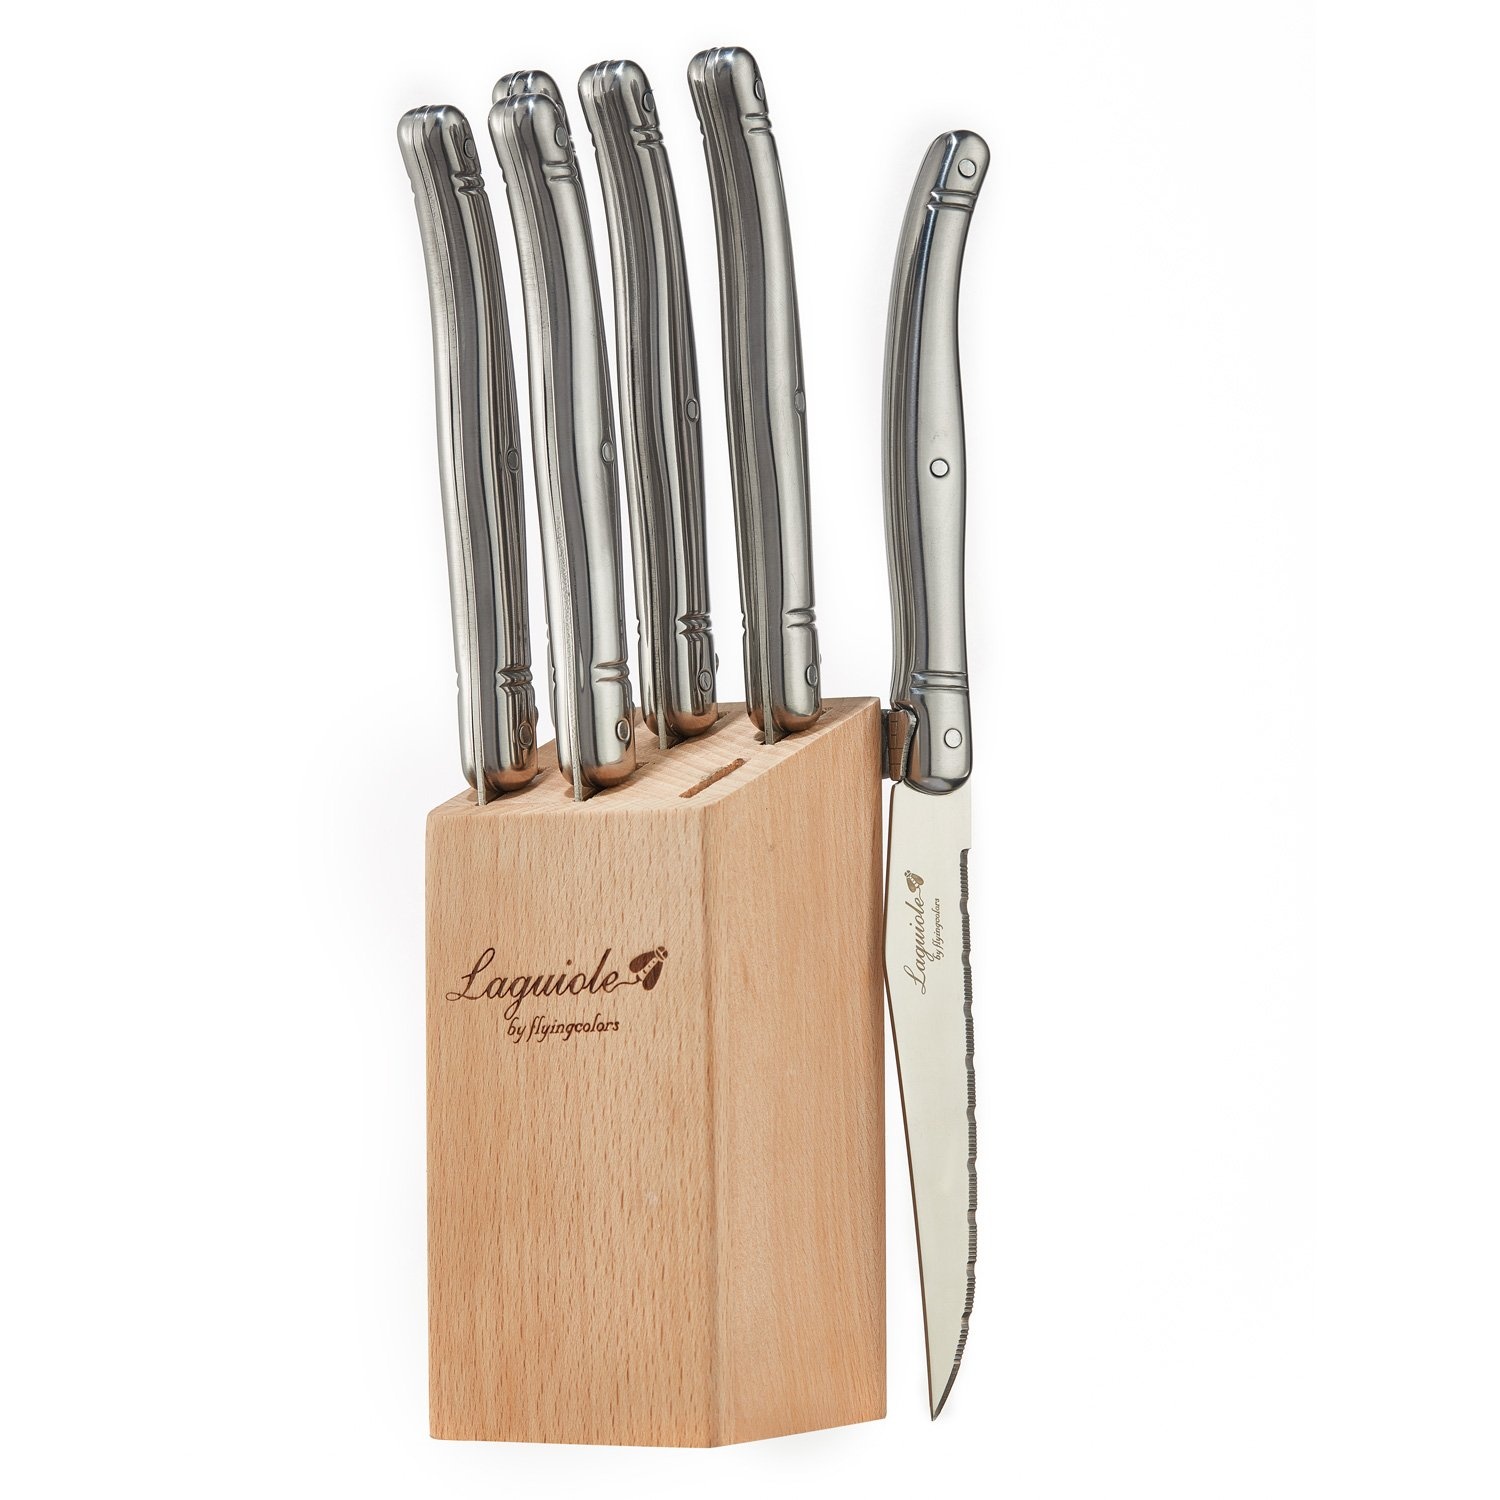 FlyingColors Laguiole Steak Knife Set, Micro Serrated Blade, Stainless Steel, Beech Wood Block, 6 Pieces